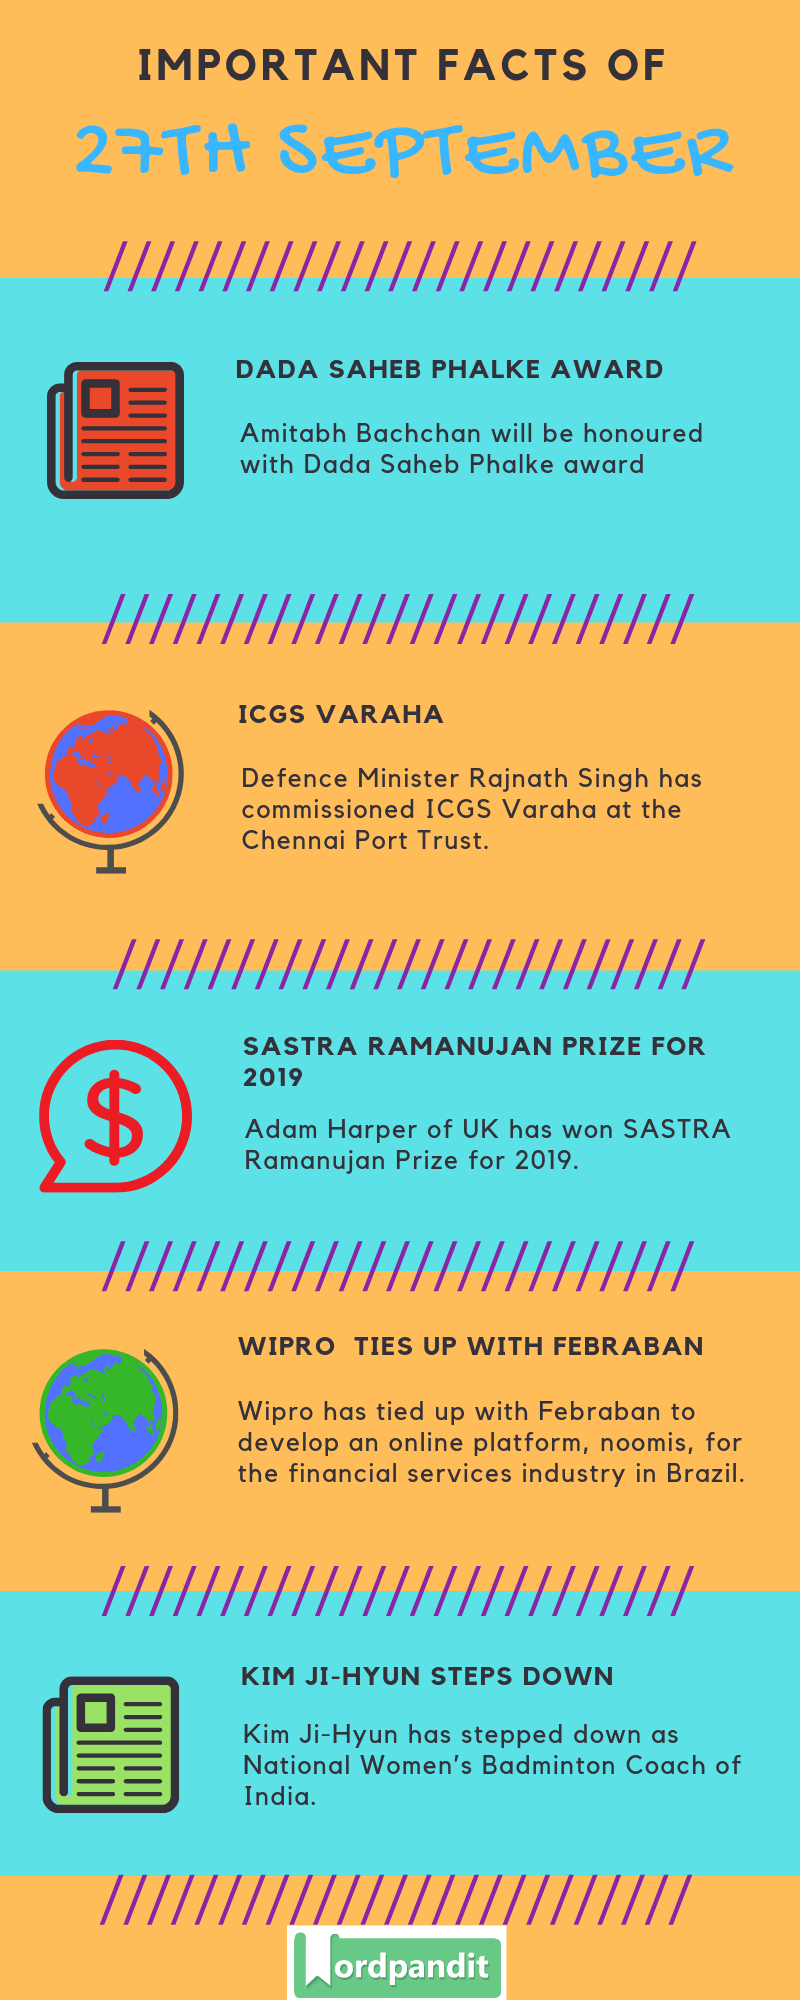 Daily Current Affairs 27 September 2019 Current Affairs Quiz 27 September 2019 Current Affairs Infographic